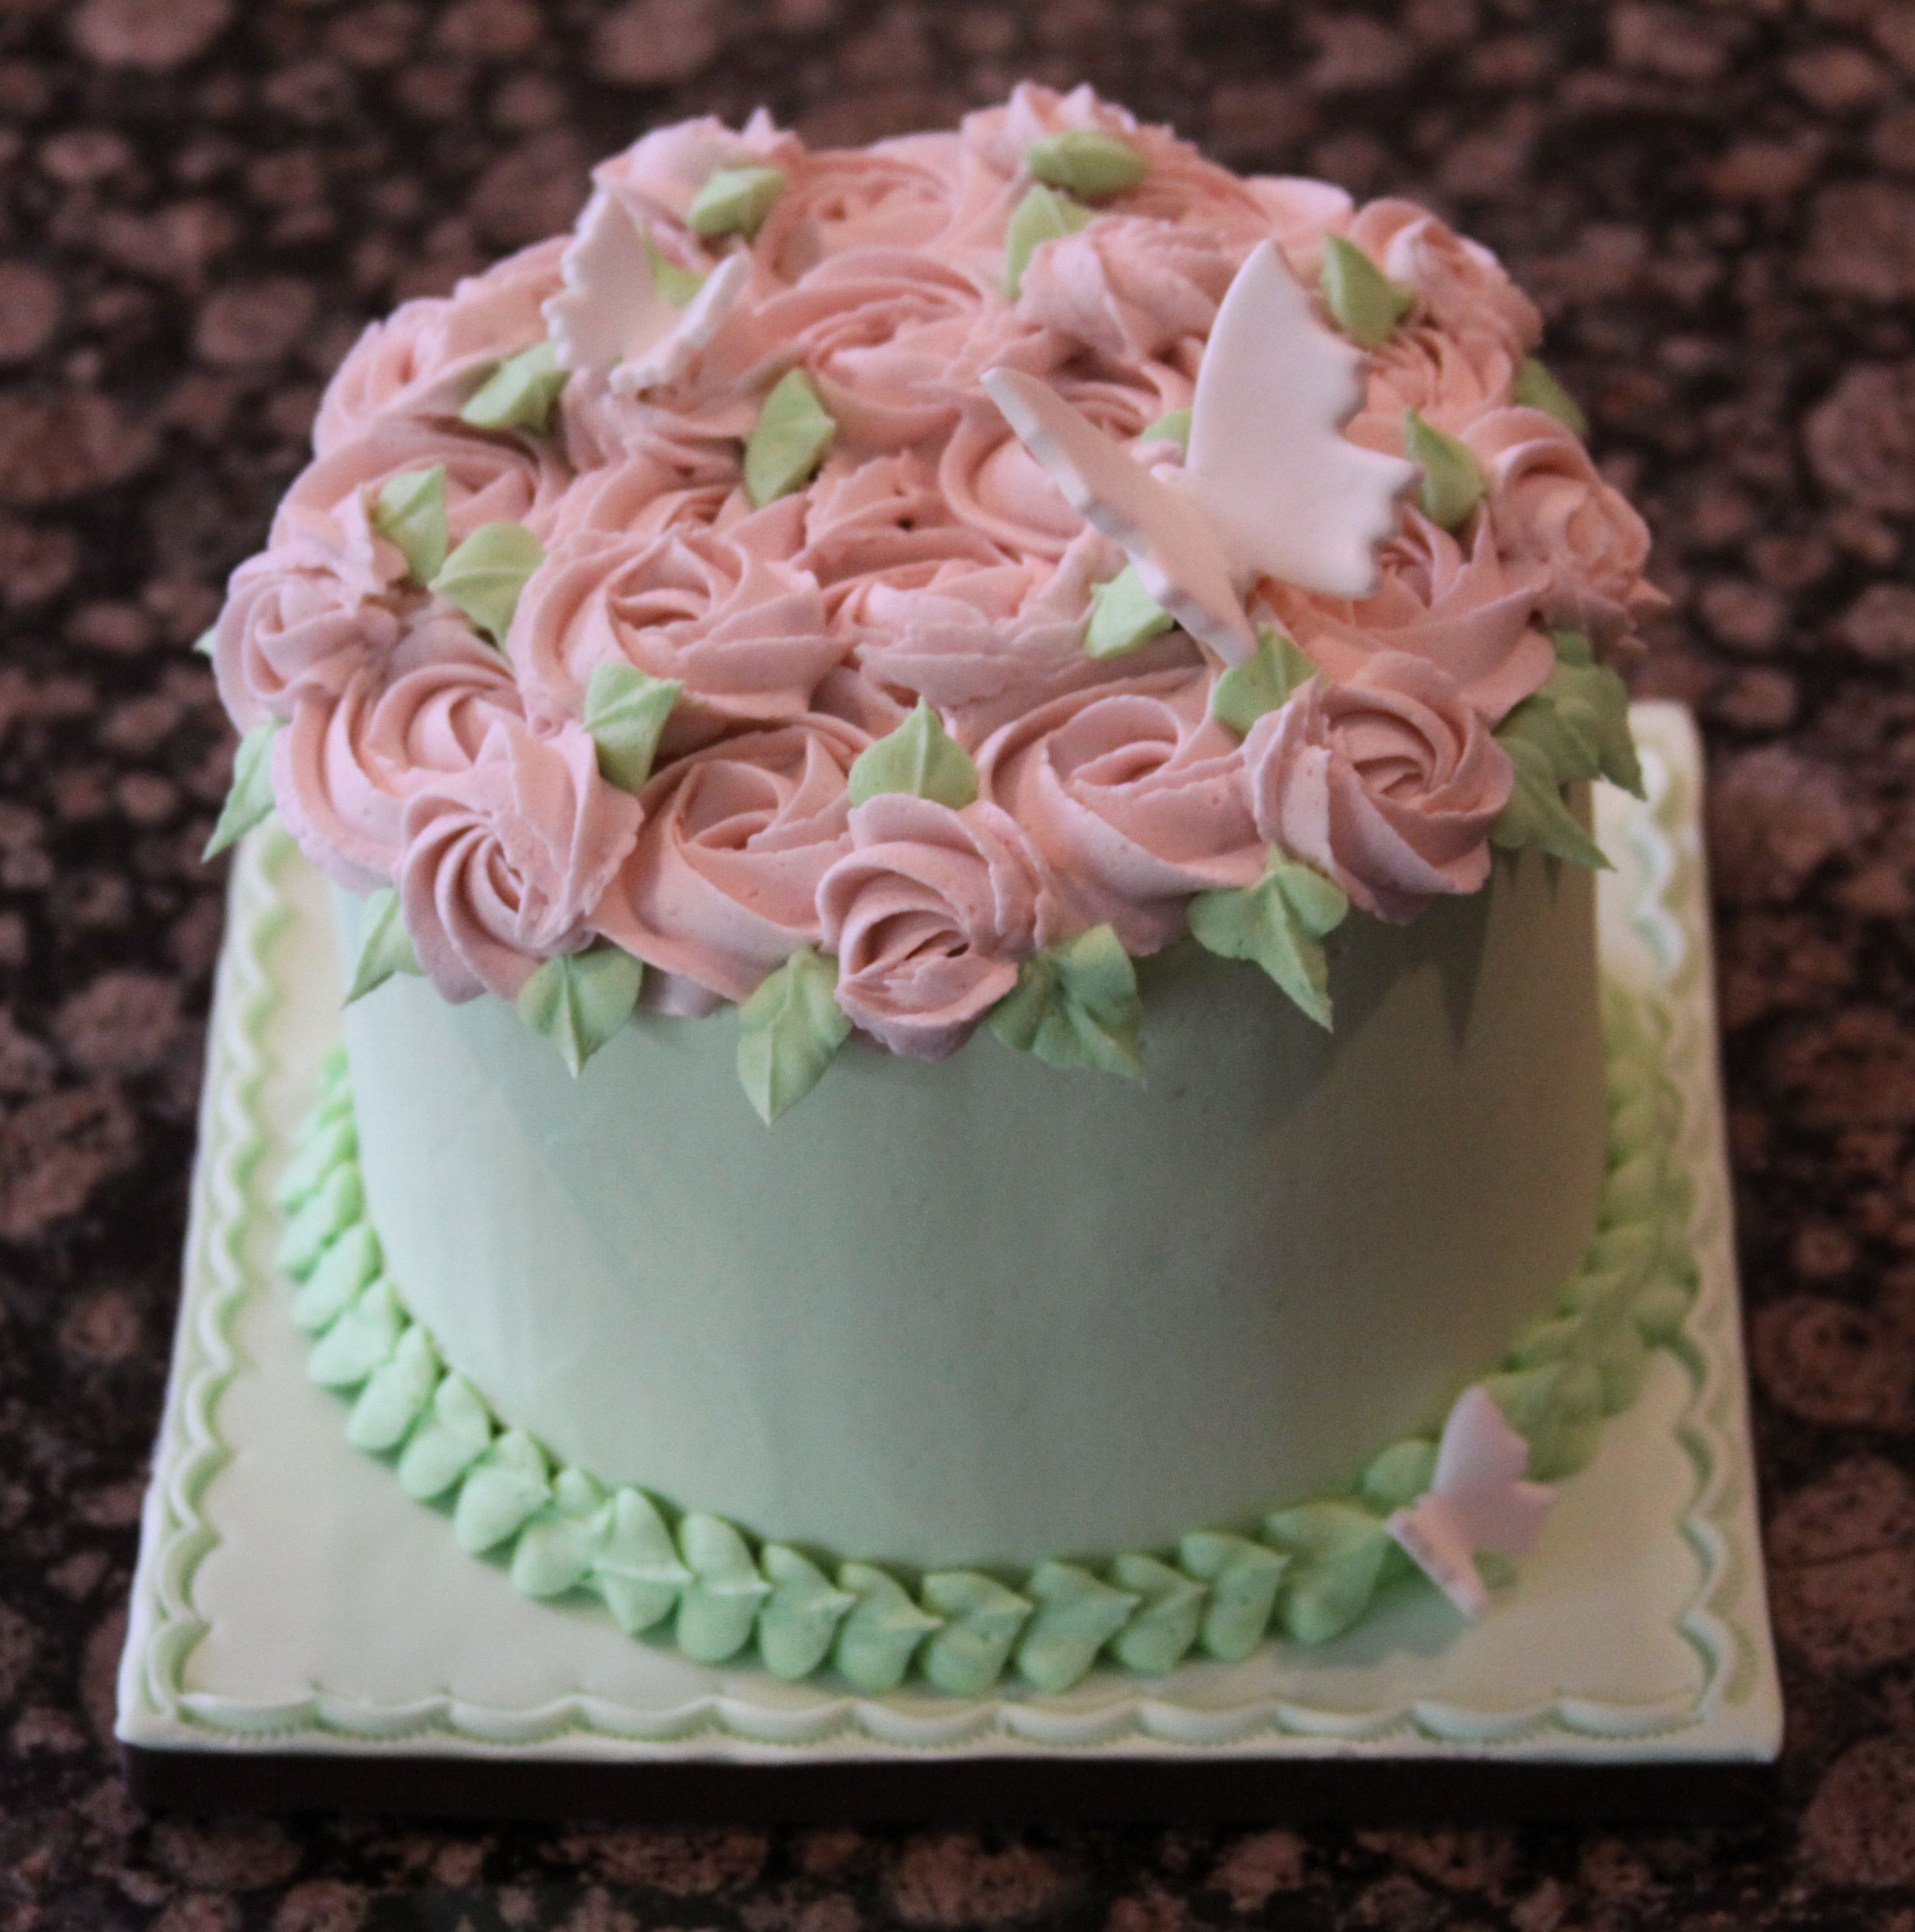 cake decorating icing that hardens Butterfly Garden Theme Smash Cake  Cake, Cake decorating, Flower cake